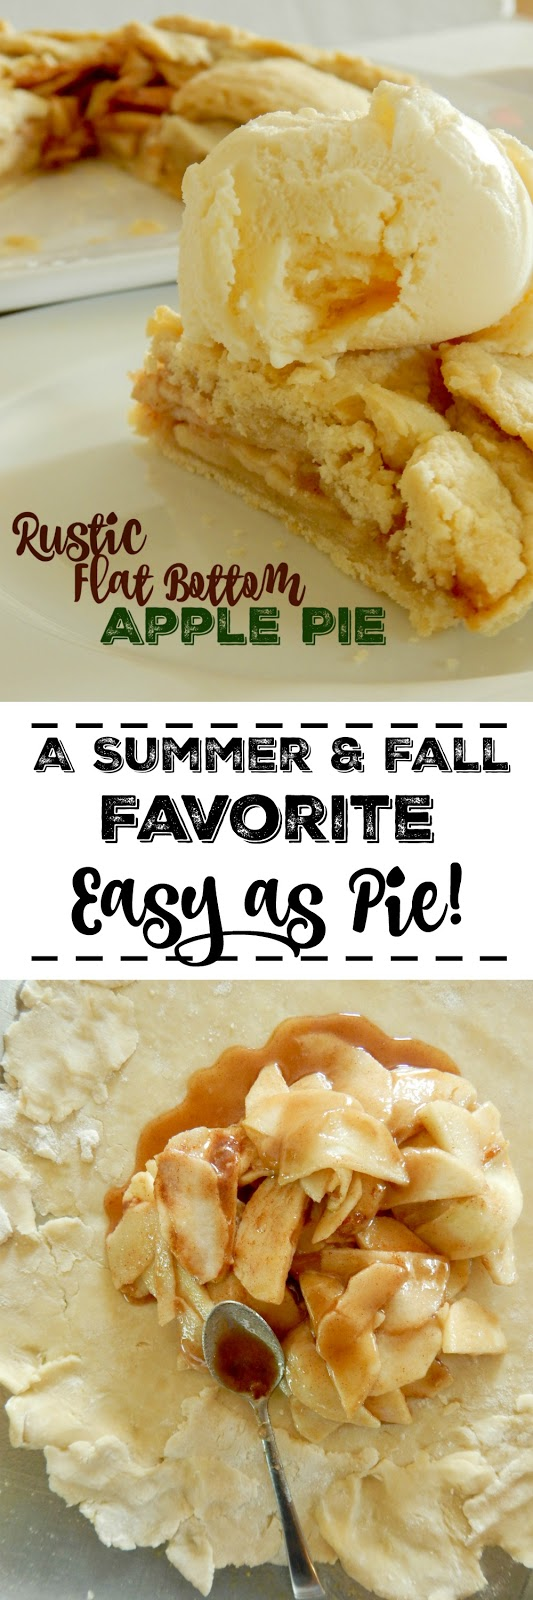 Rustic Flat Bottom Apple Pie...the lazy baker's pie dream!  A simple pie crust filled with juicy seasoned apples, folded up and baked to perfection.  Top with a healhy dose of whipped cream or ice cream and dessert is set. (sweetandsavoryfood.com)